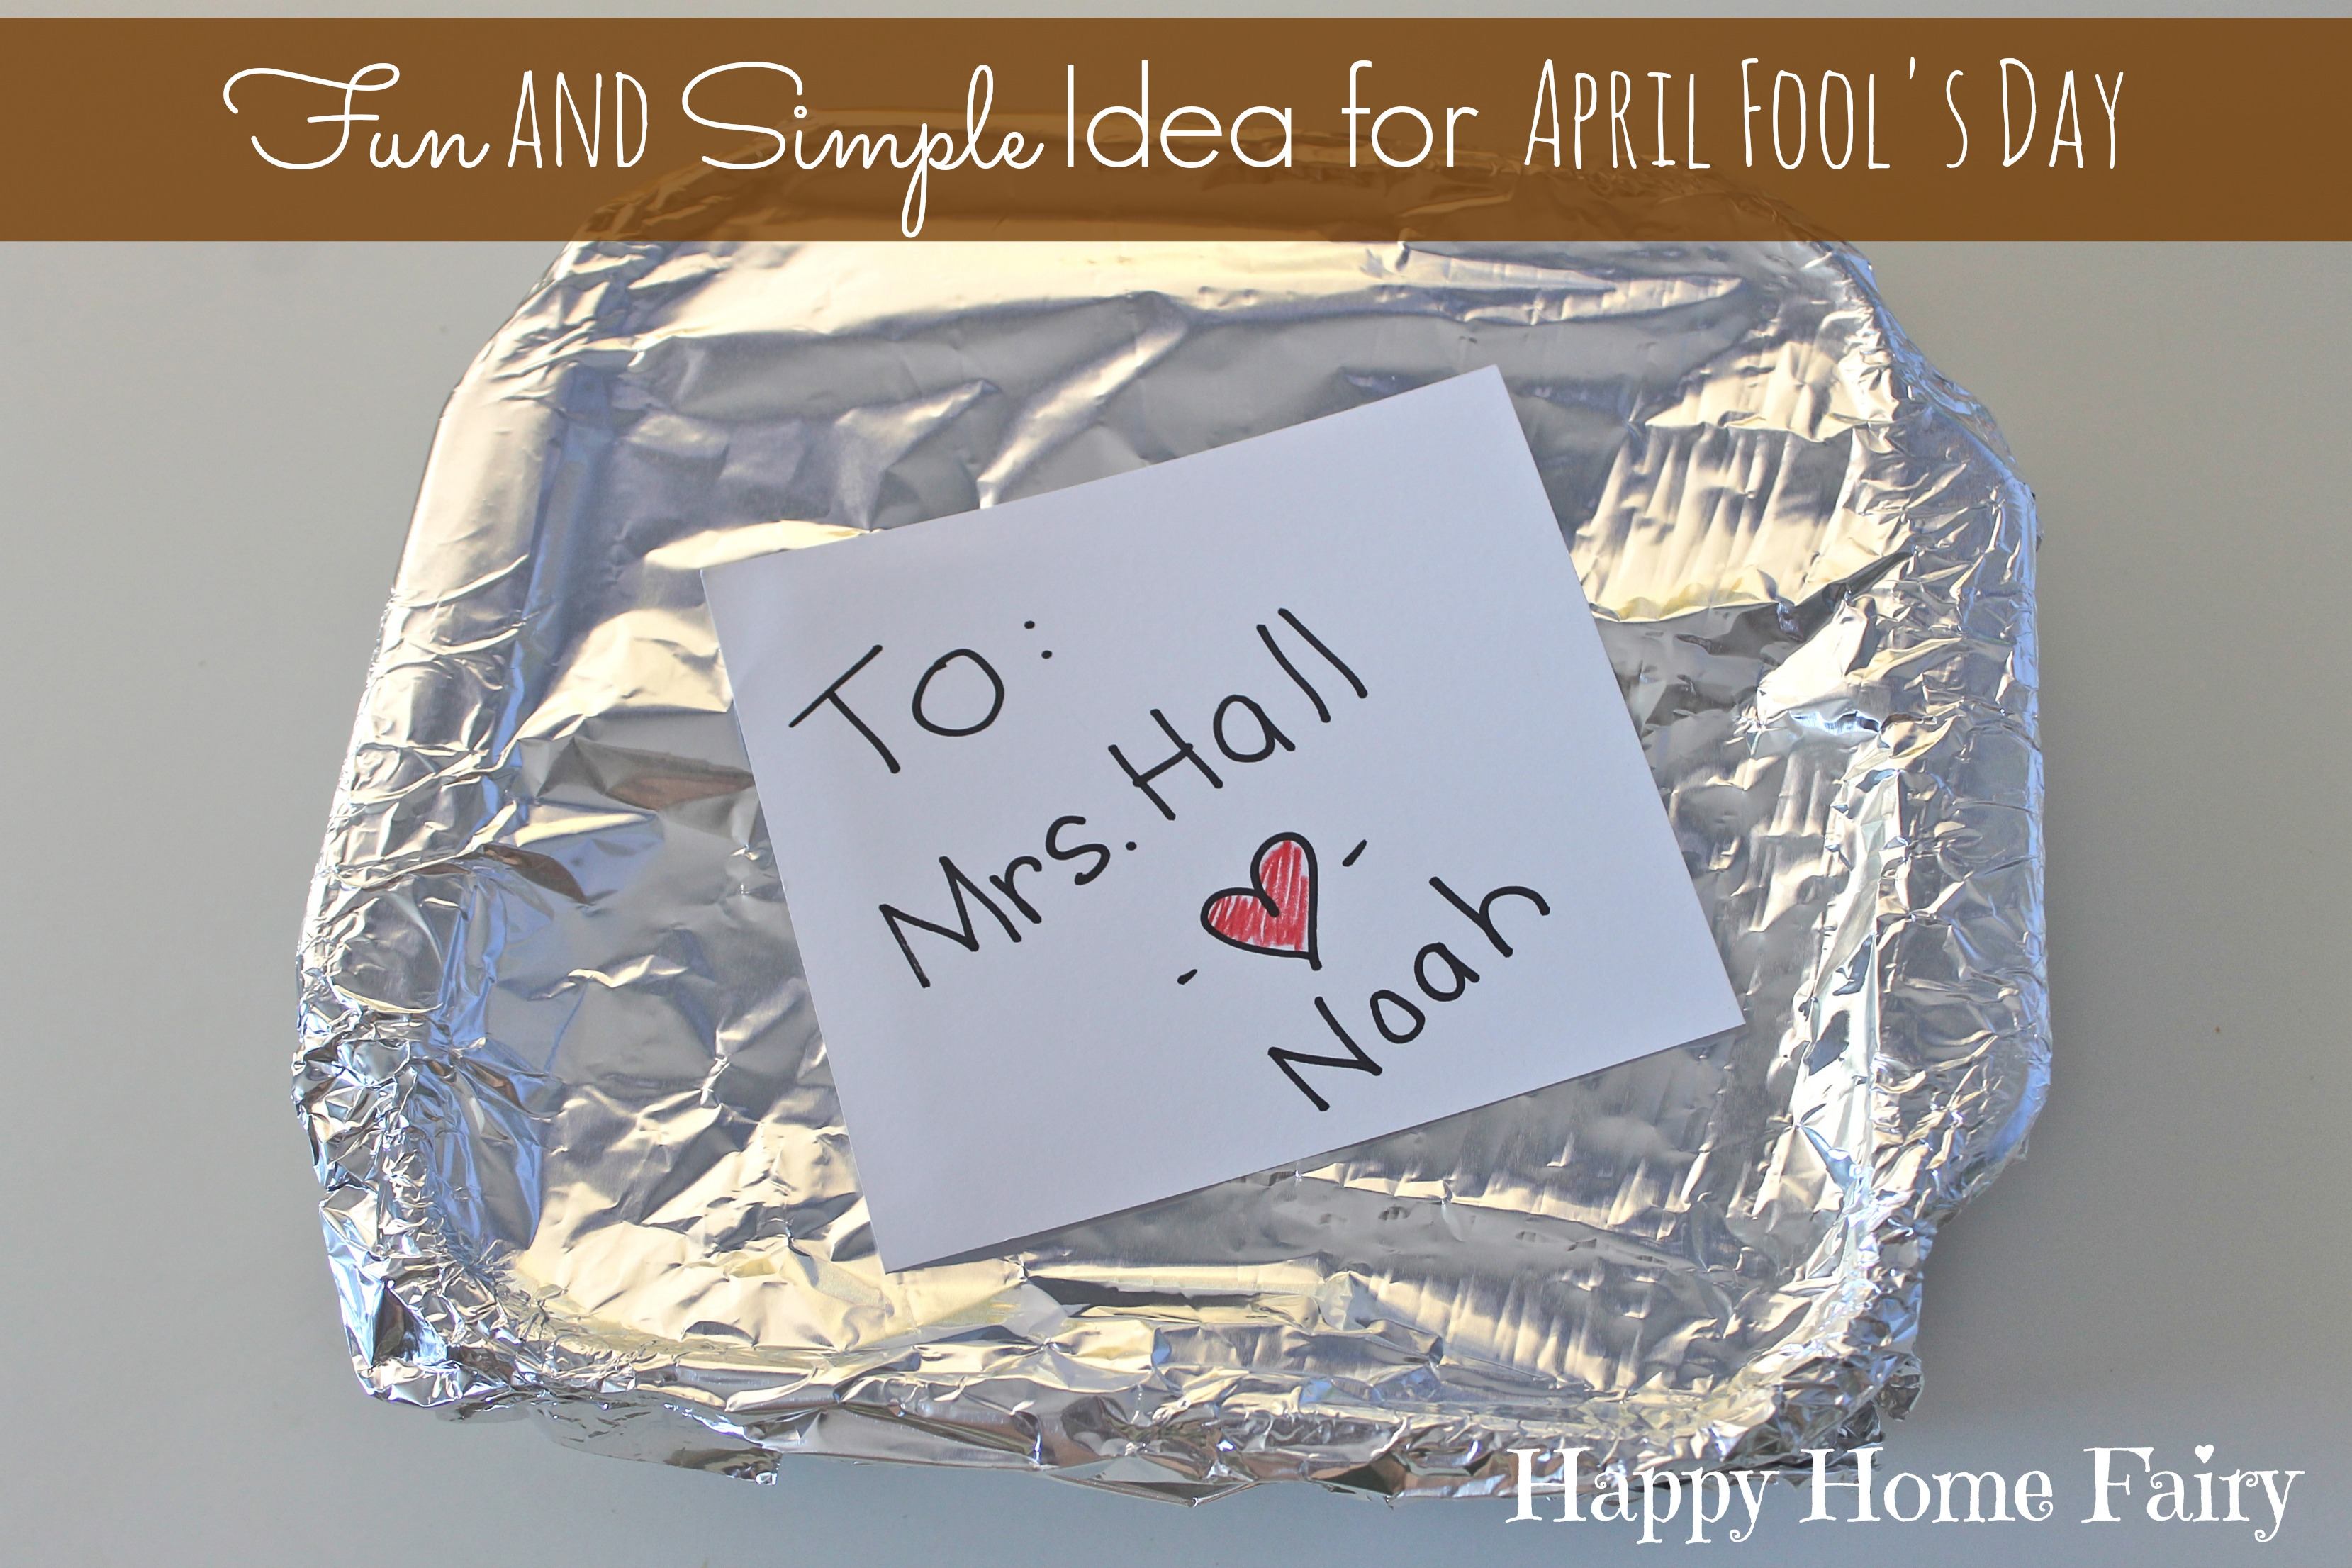 hight resolution of Last Minute Hilarious April Fool's Day Joke - Happy Home Fairy